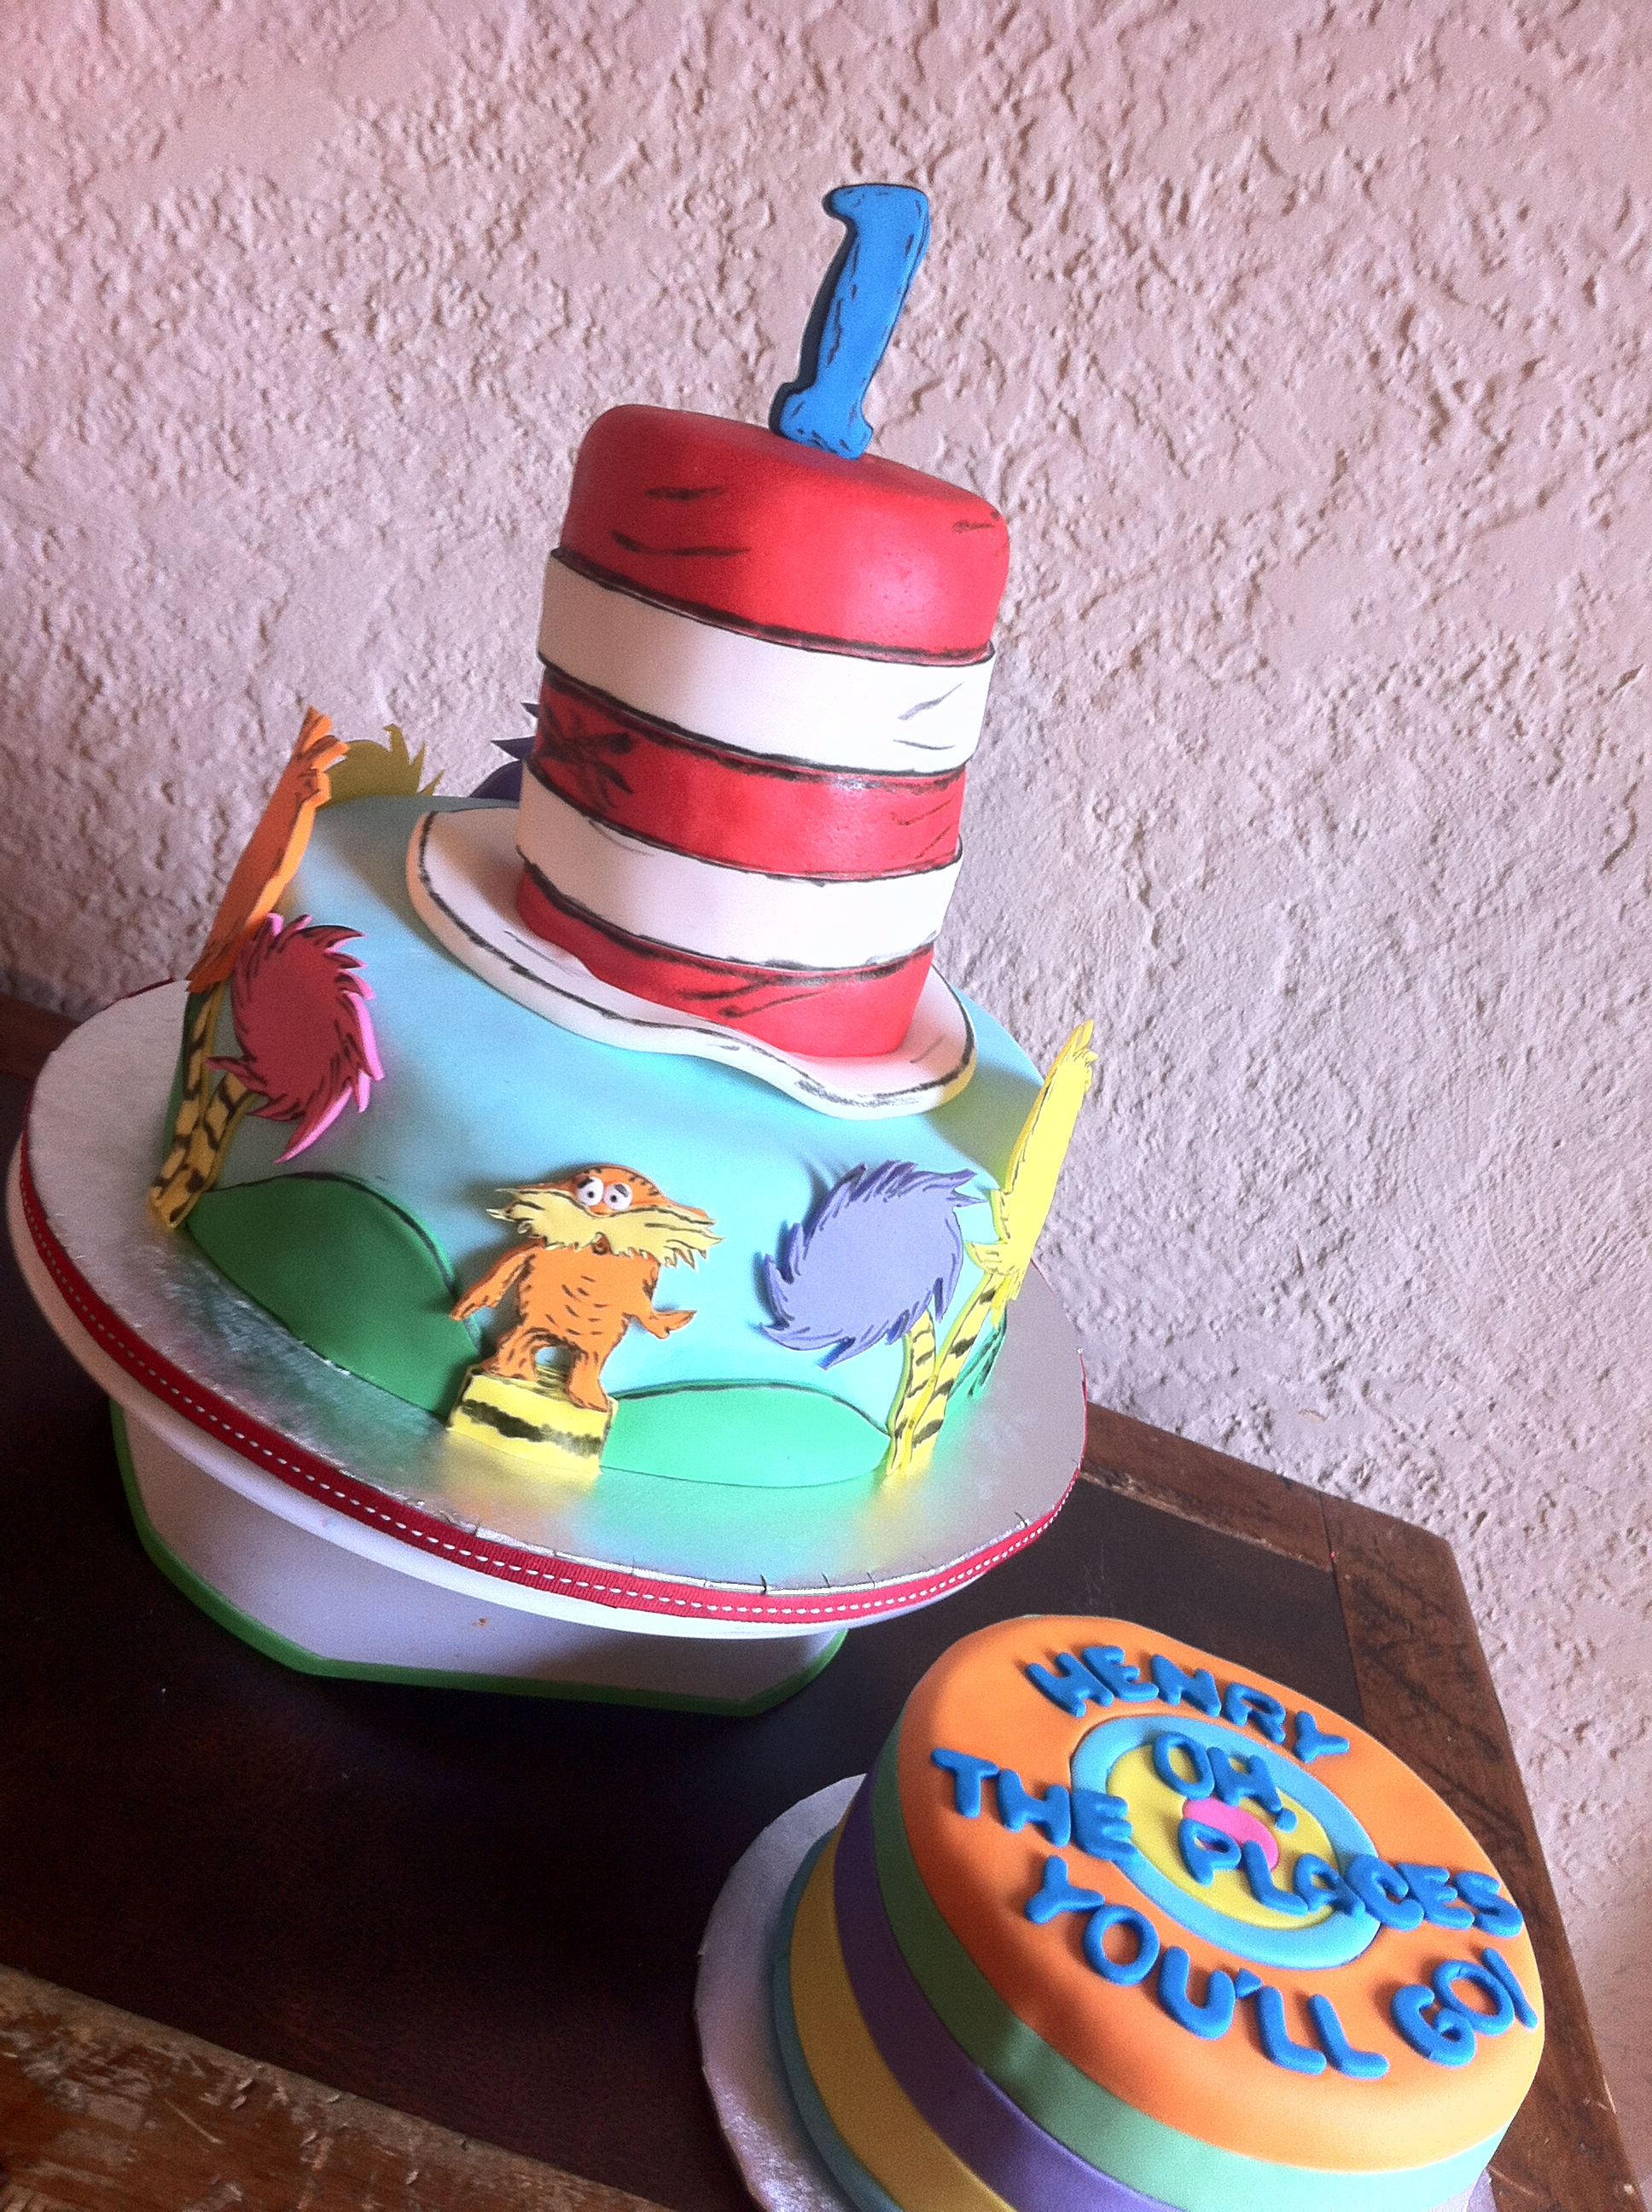 Dr Suess Birthday Cake Smash Cake Lolos Cakes Sweets